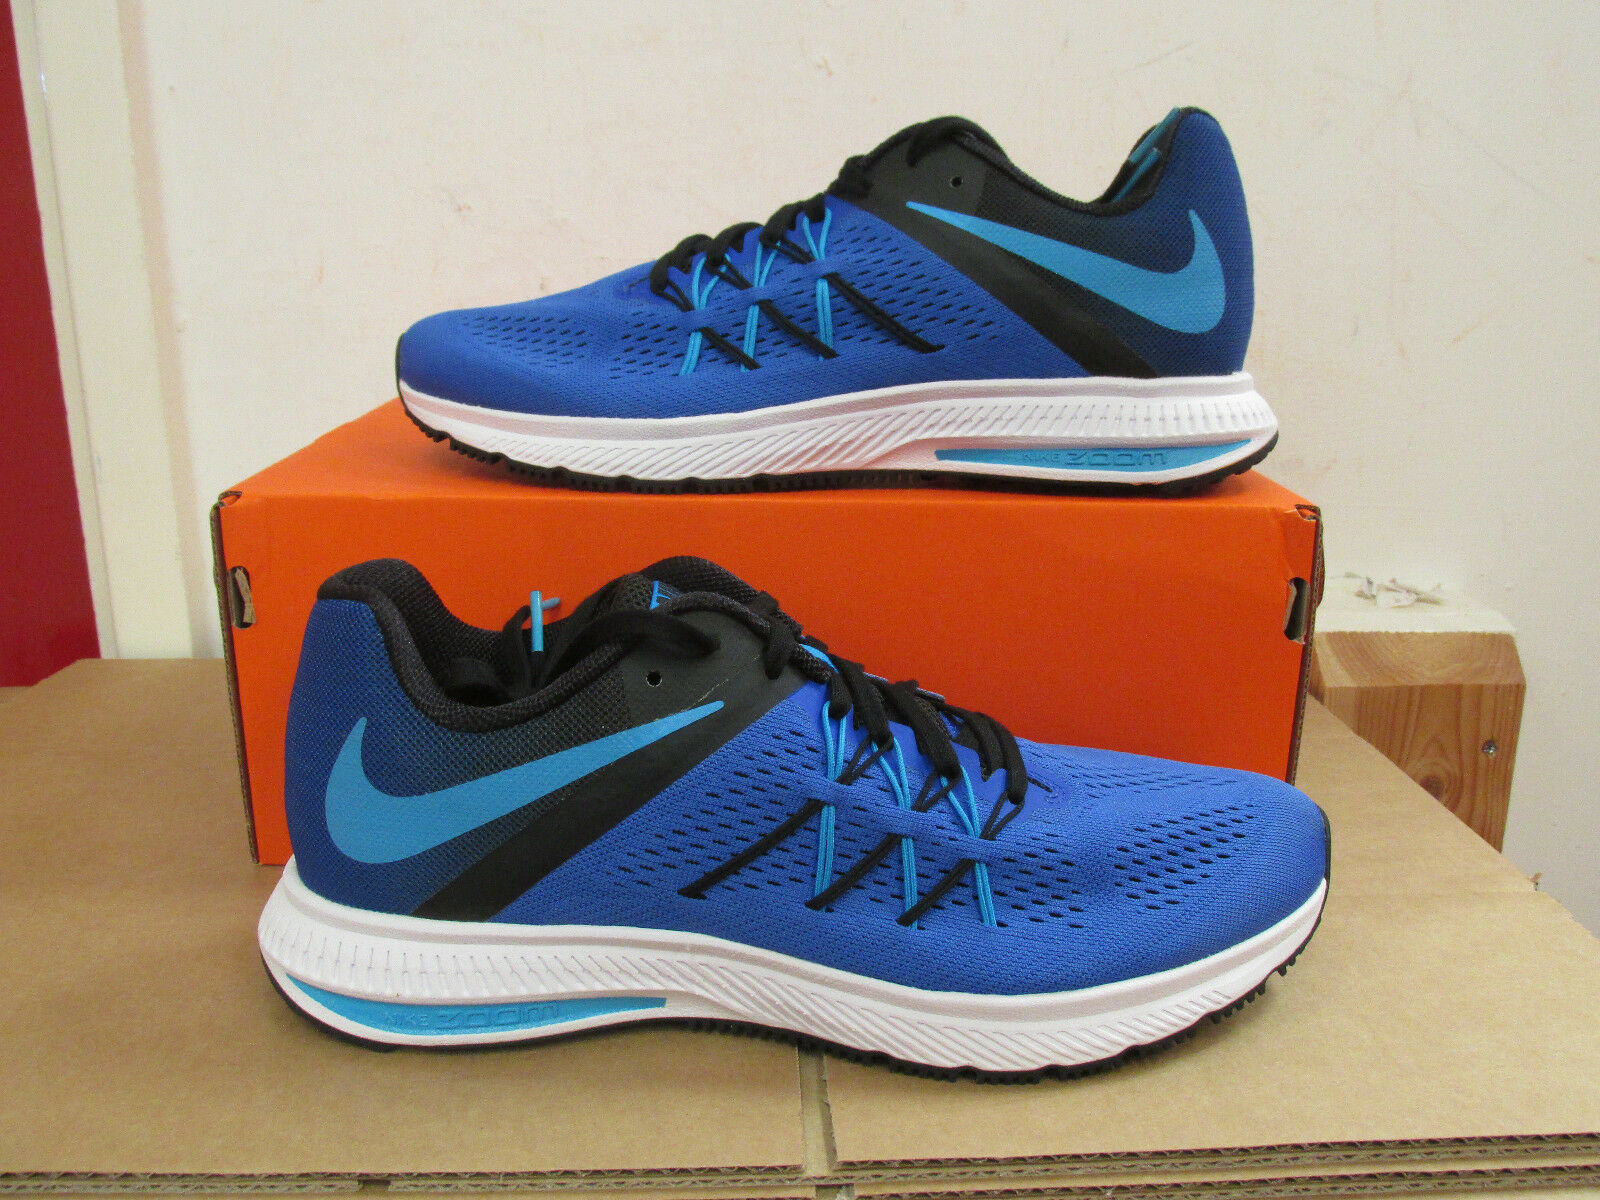 Nike Zoom Winflo 3 831561  Uomo Running Trainers 831561 3 401 Sneakers Schuhes CLEARANCE 824e34